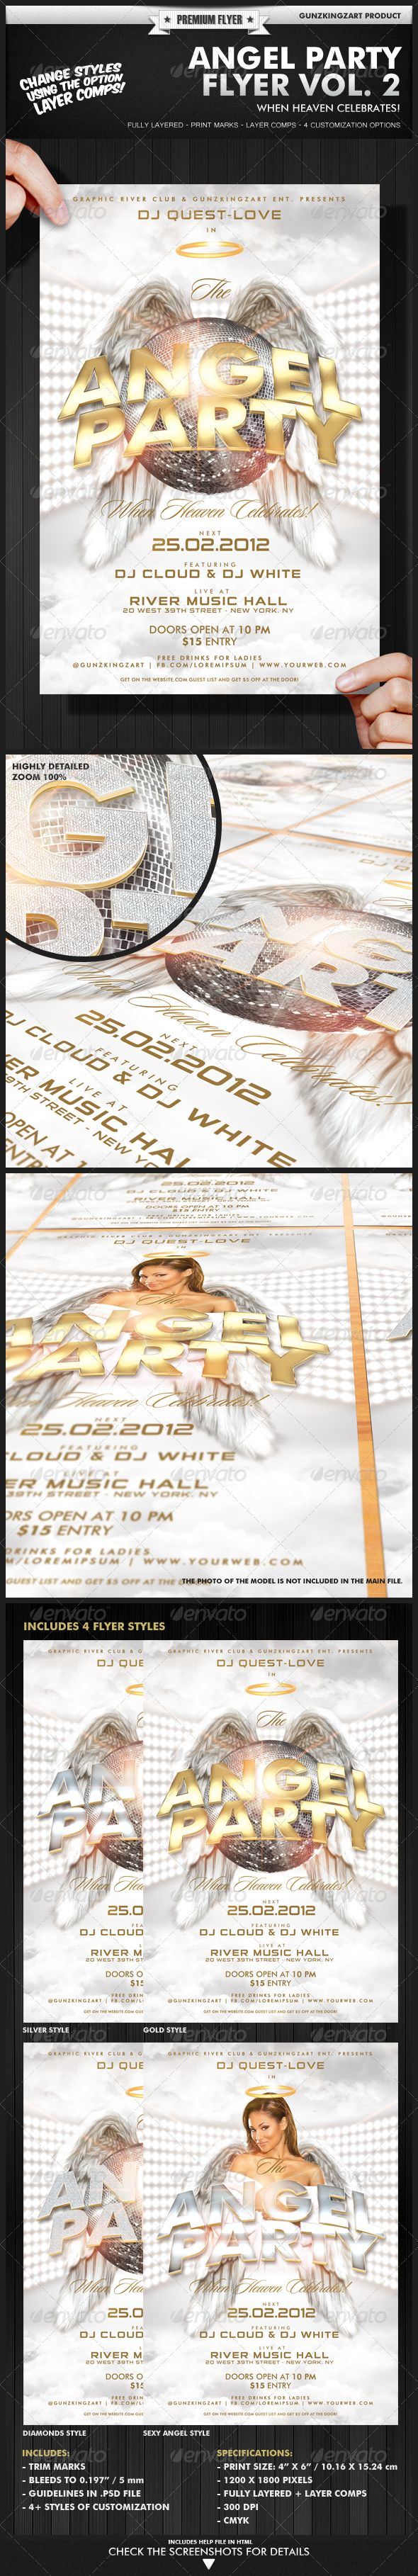 Angel Party Flyer Vol. 2 - Flyer Template